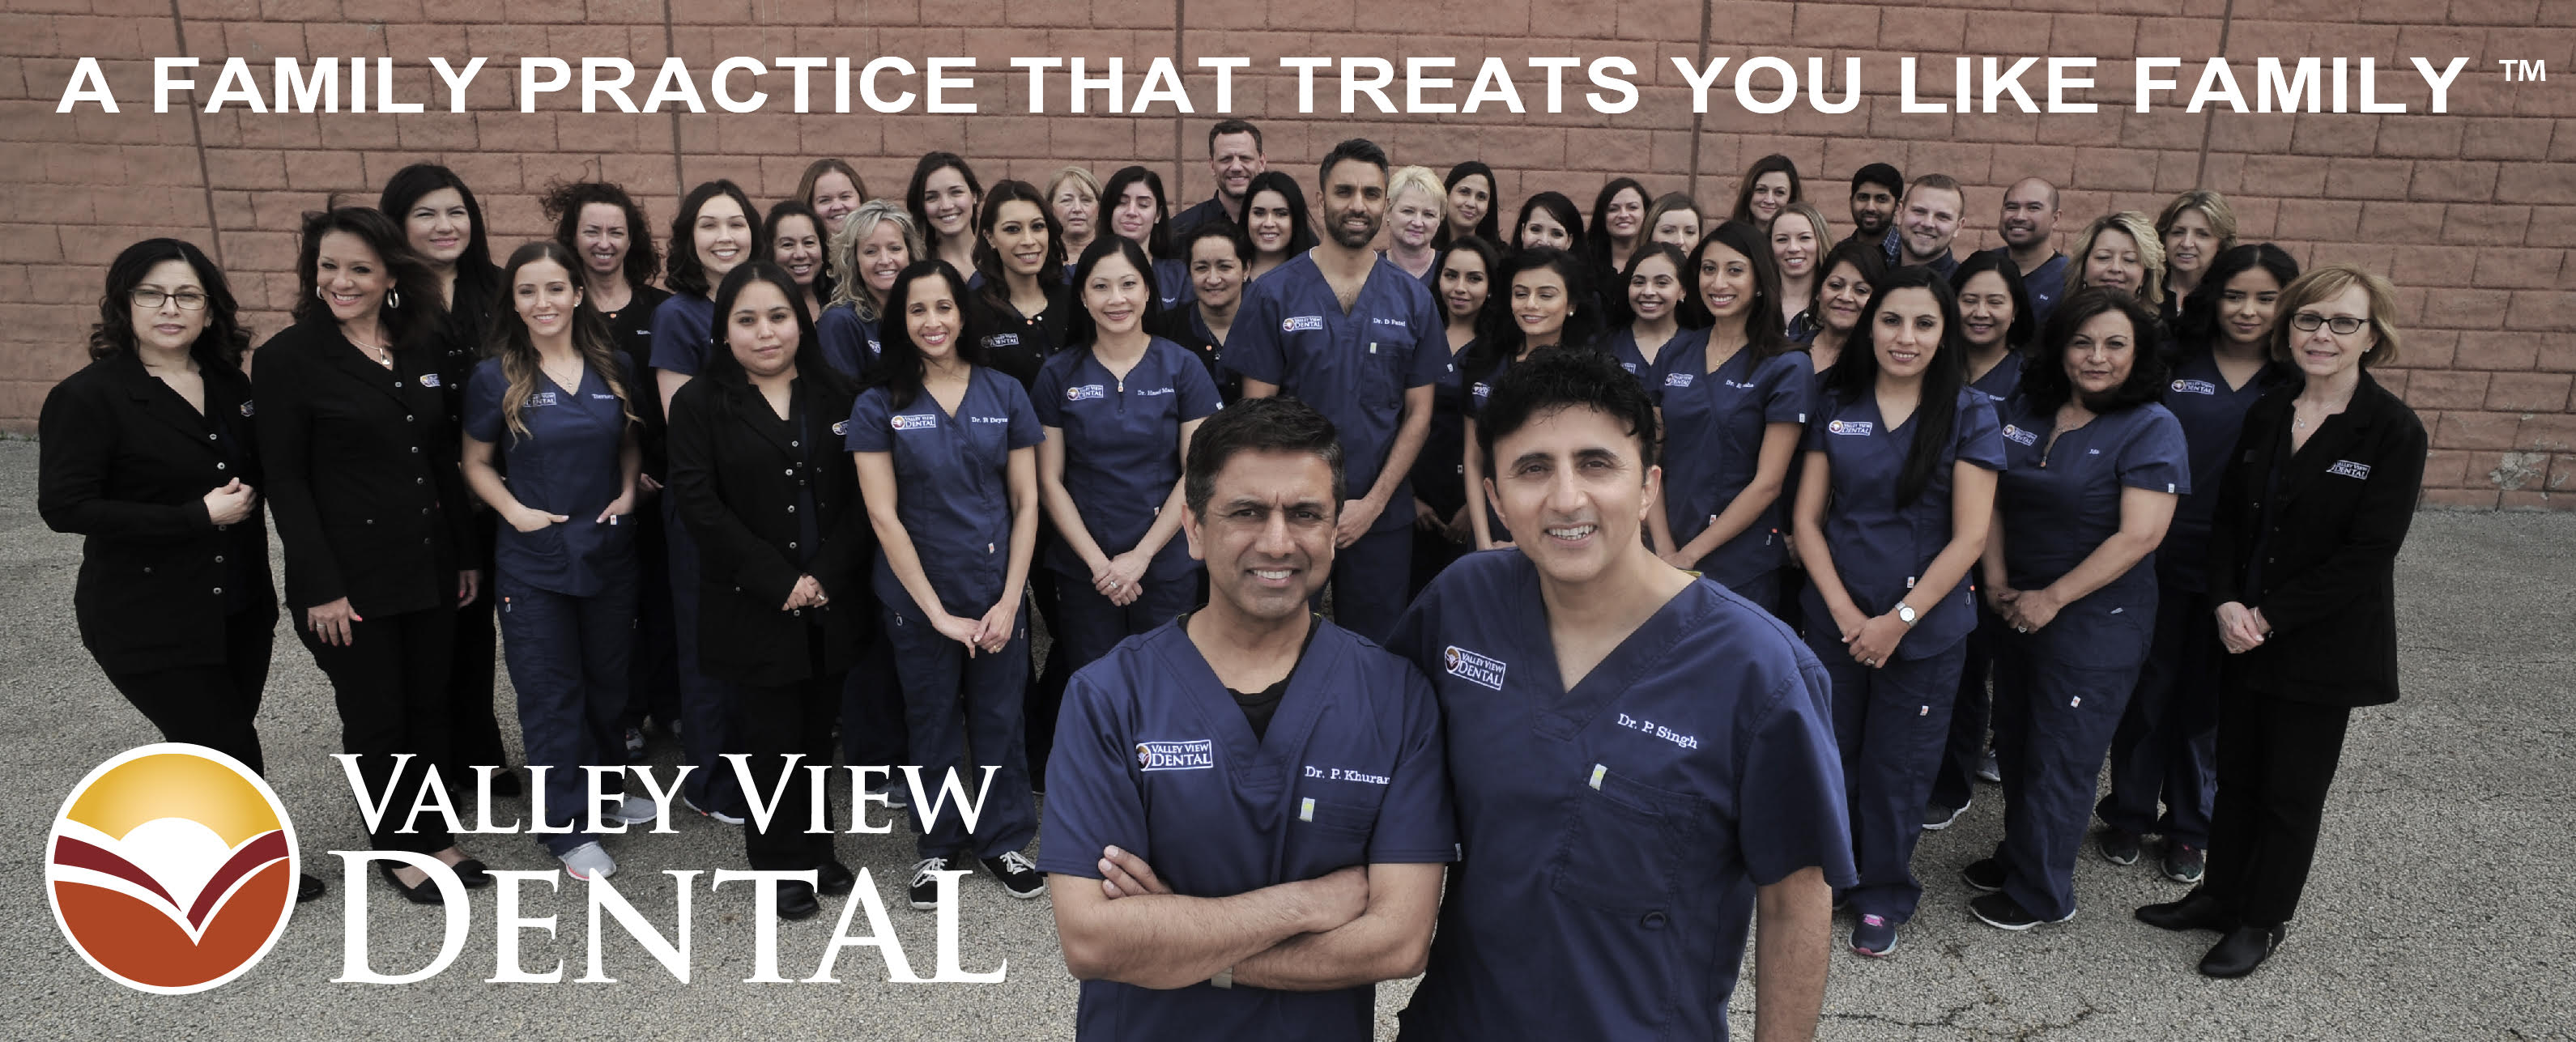 Valley View Dental reviews | General Dentistry at 441 N Weber Road - Romeoville IL